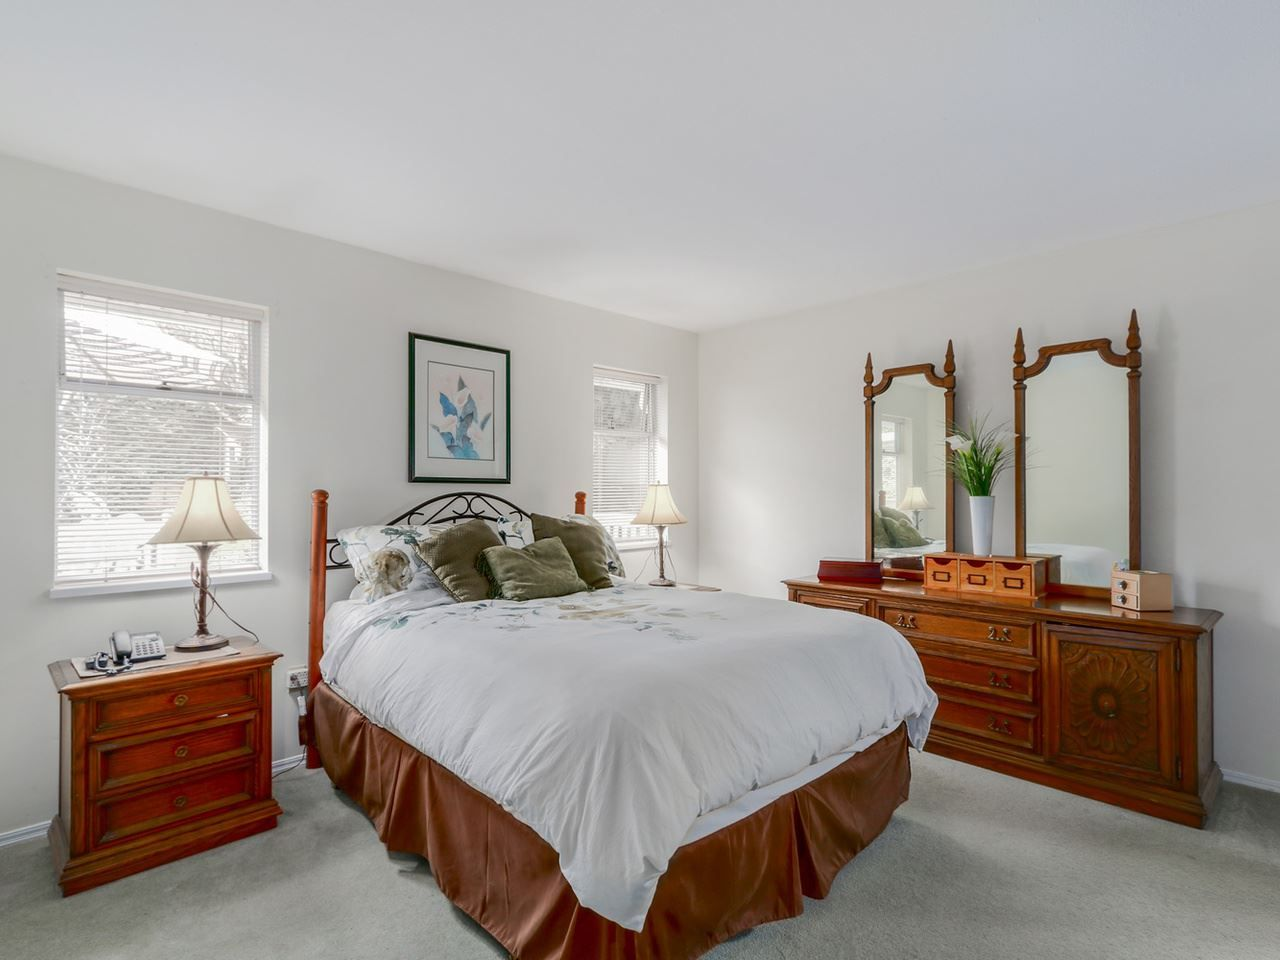 """Photo 10: Photos: 2559 BLUEBELL Avenue in Coquitlam: Summitt View House for sale in """"SUMMITT VIEW"""" : MLS®# R2064204"""